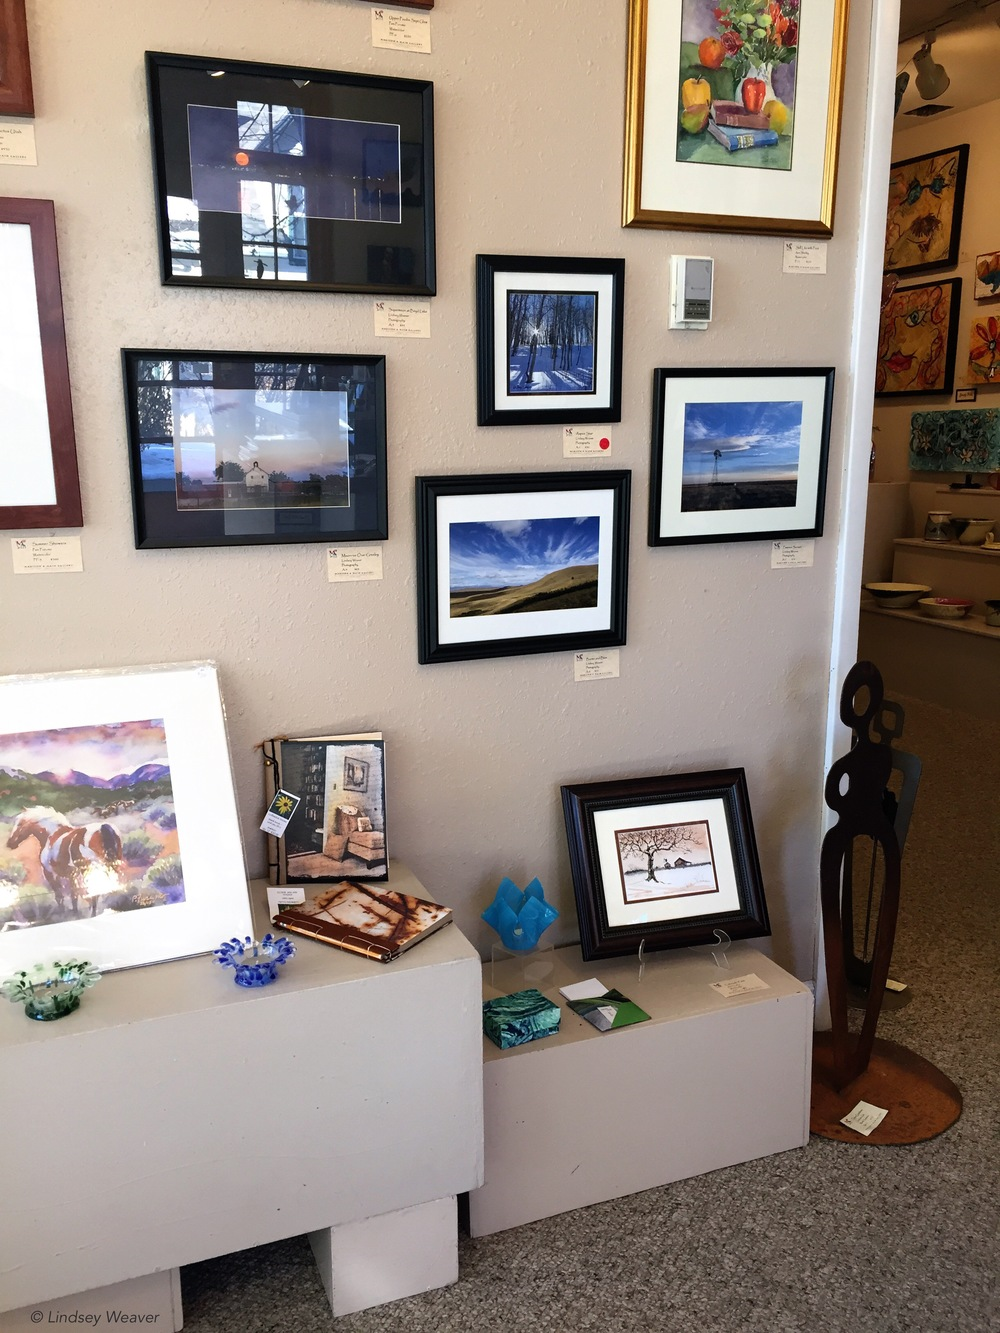 Images at the Madison & Main Gallery